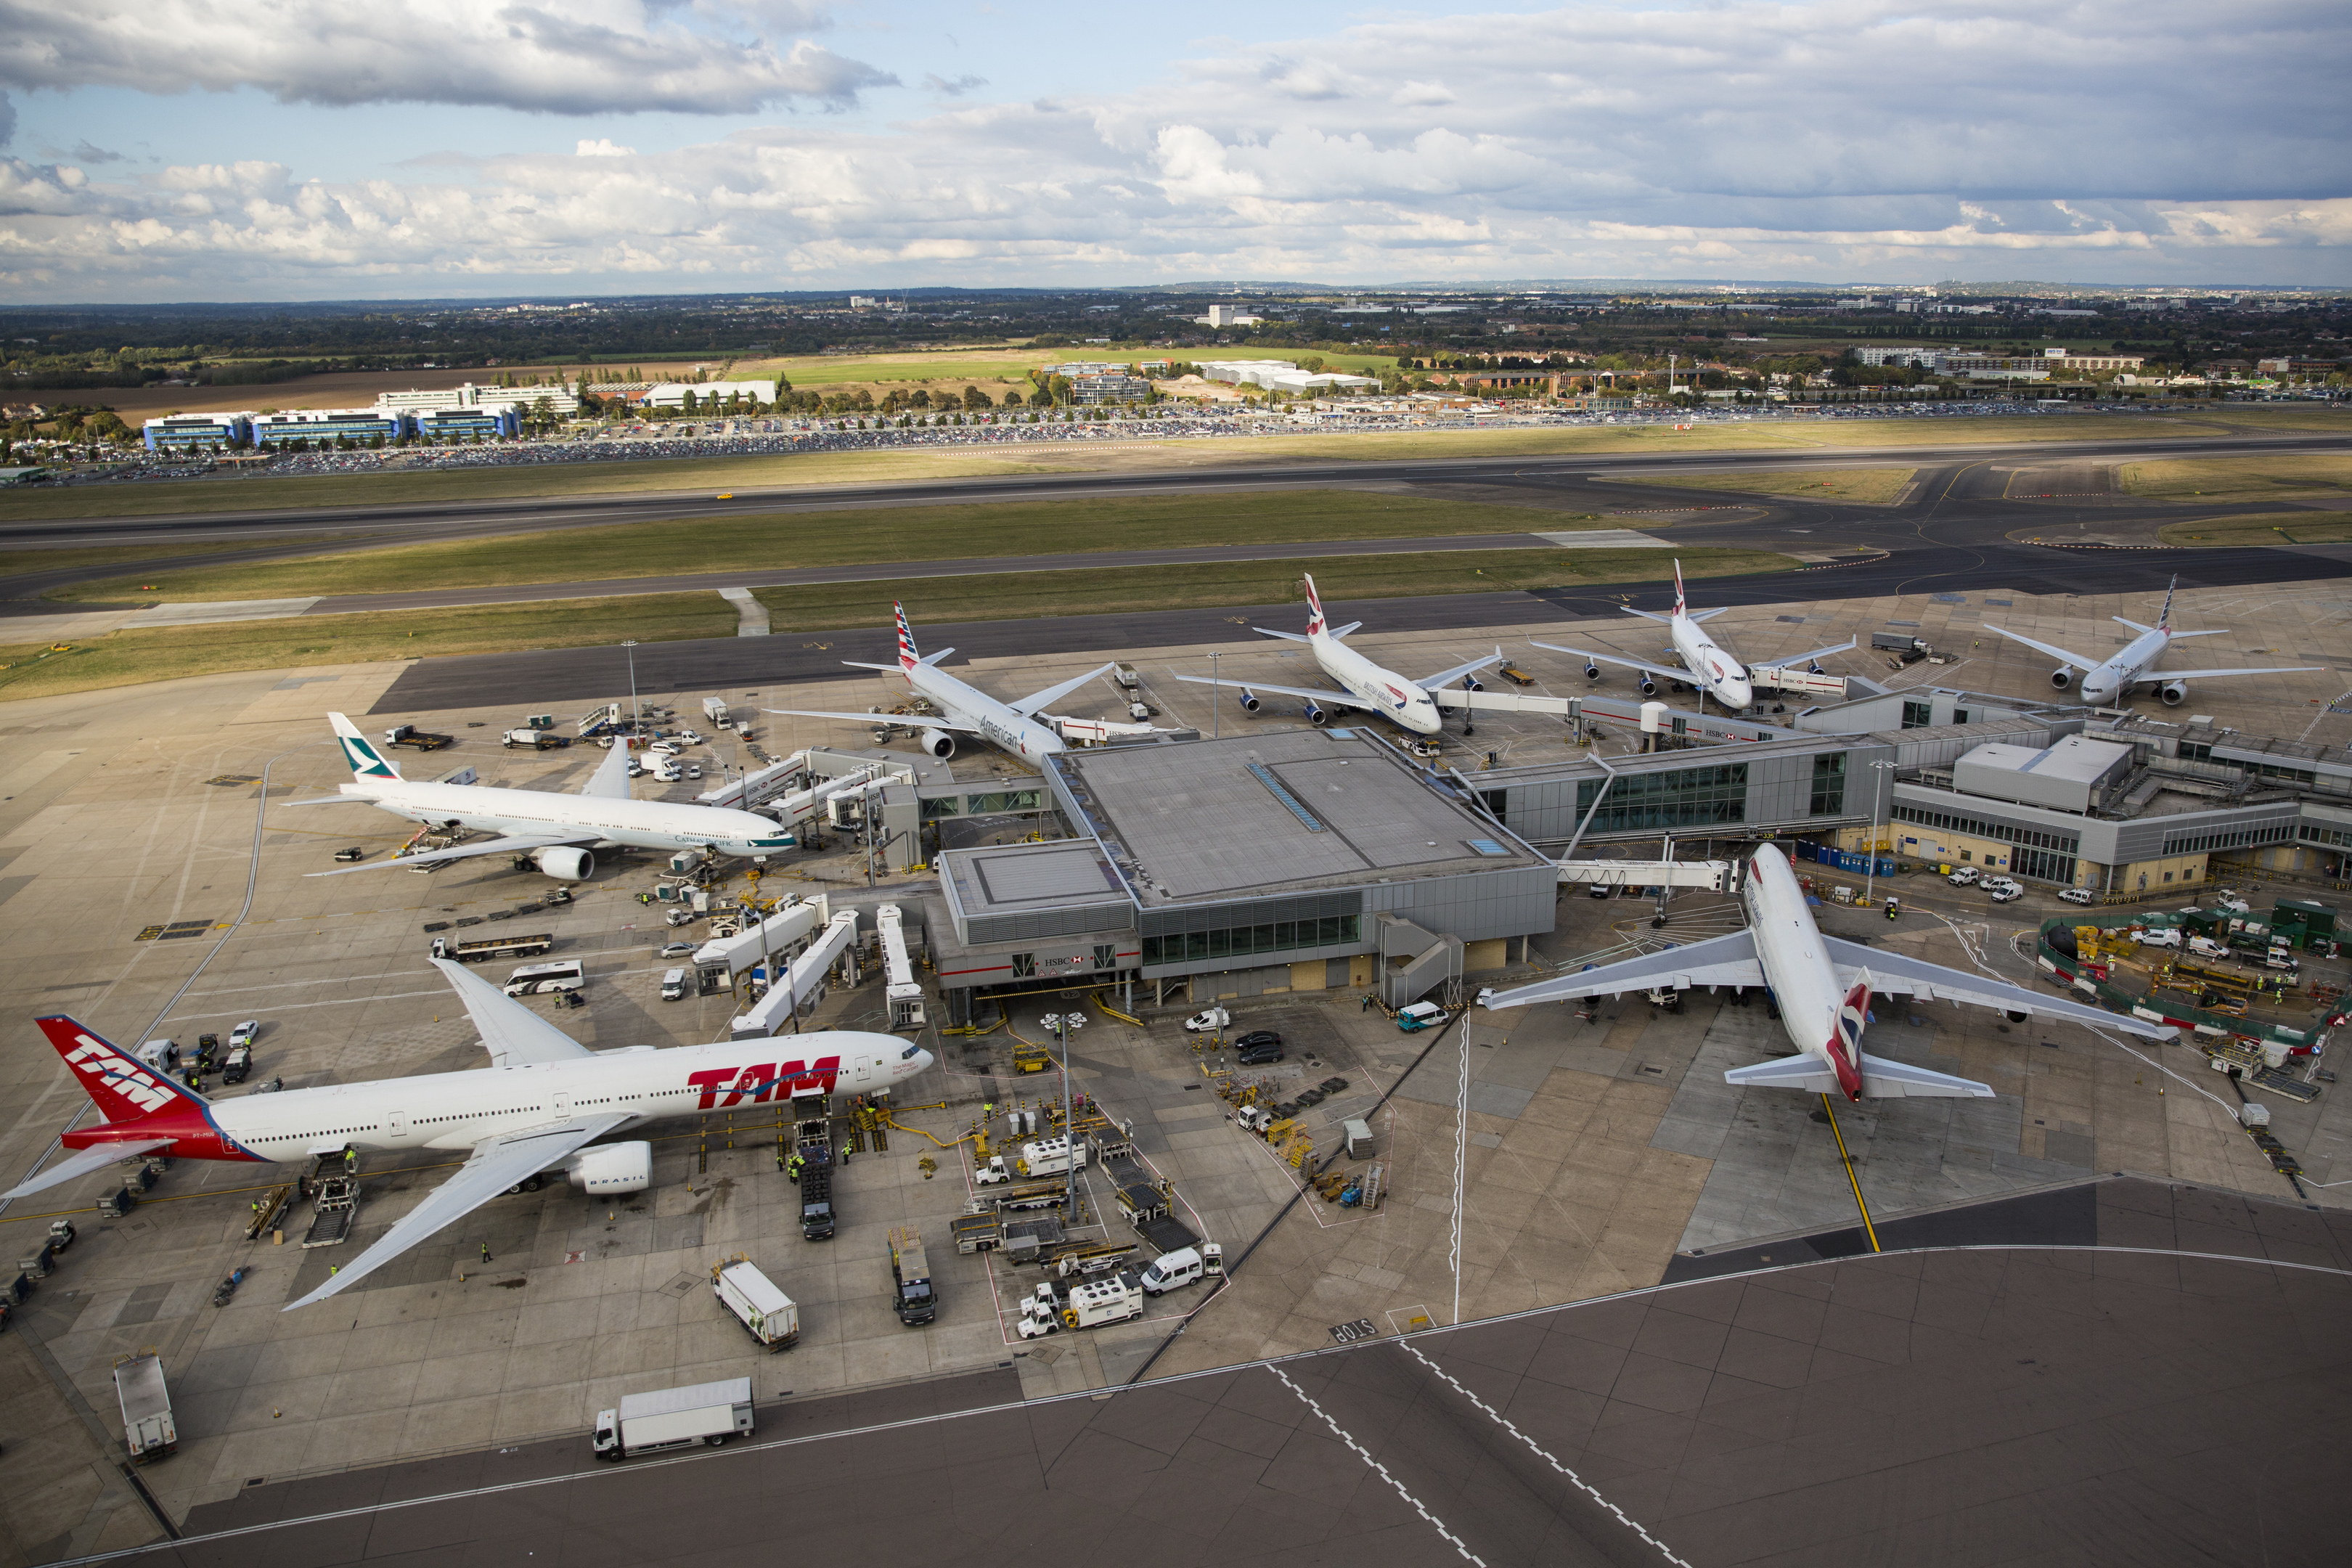 Planes on stand at Heathrow Airport